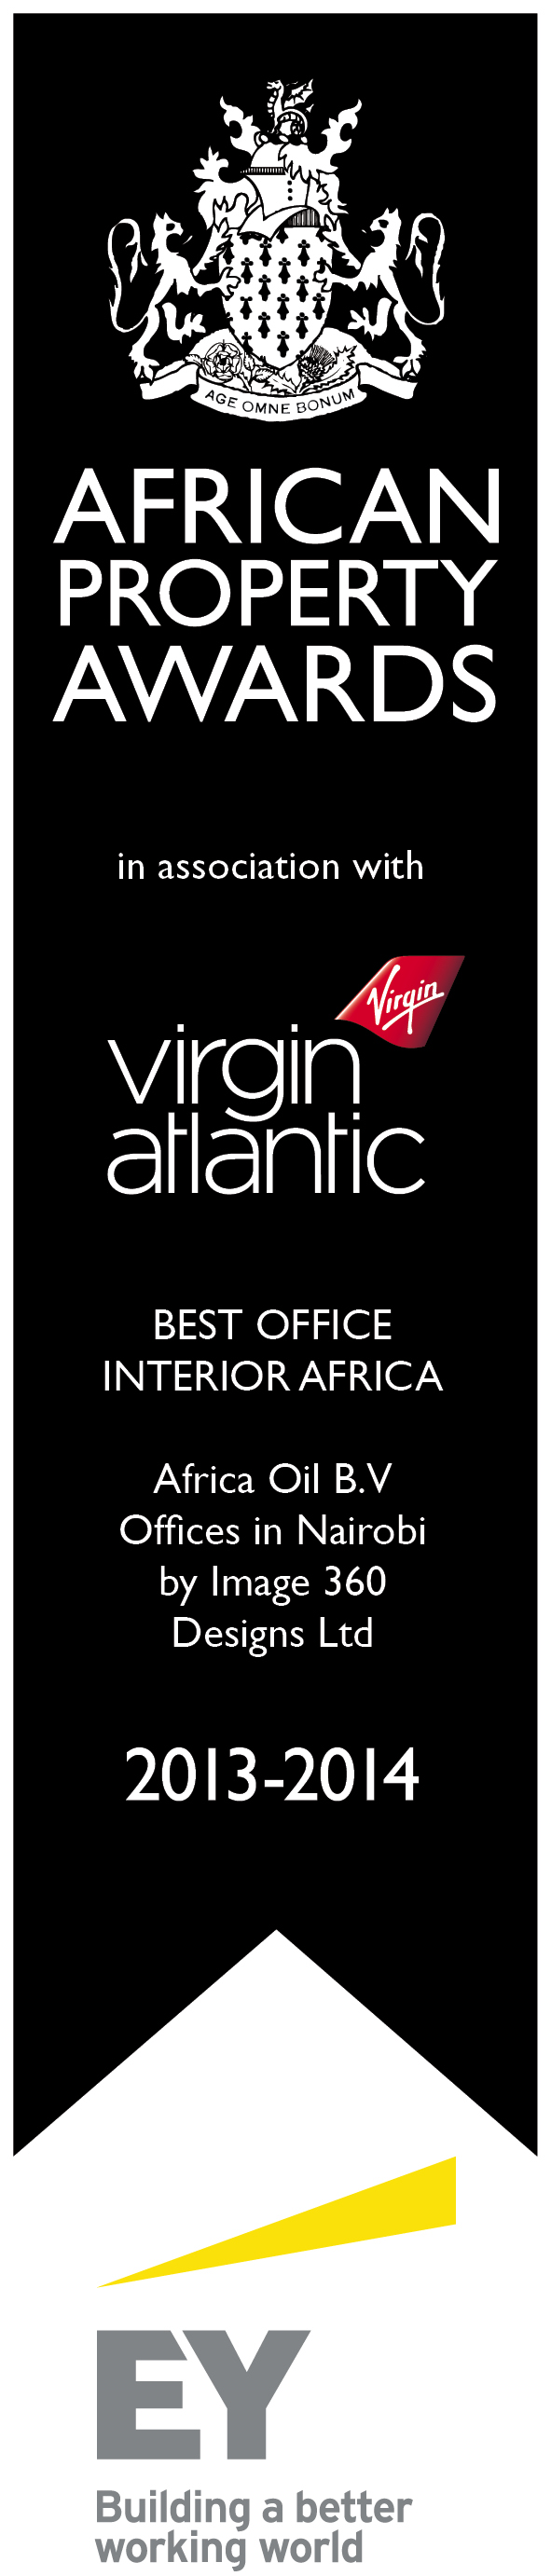 African Property Award (2013-2014) for Best Office Interior Africa